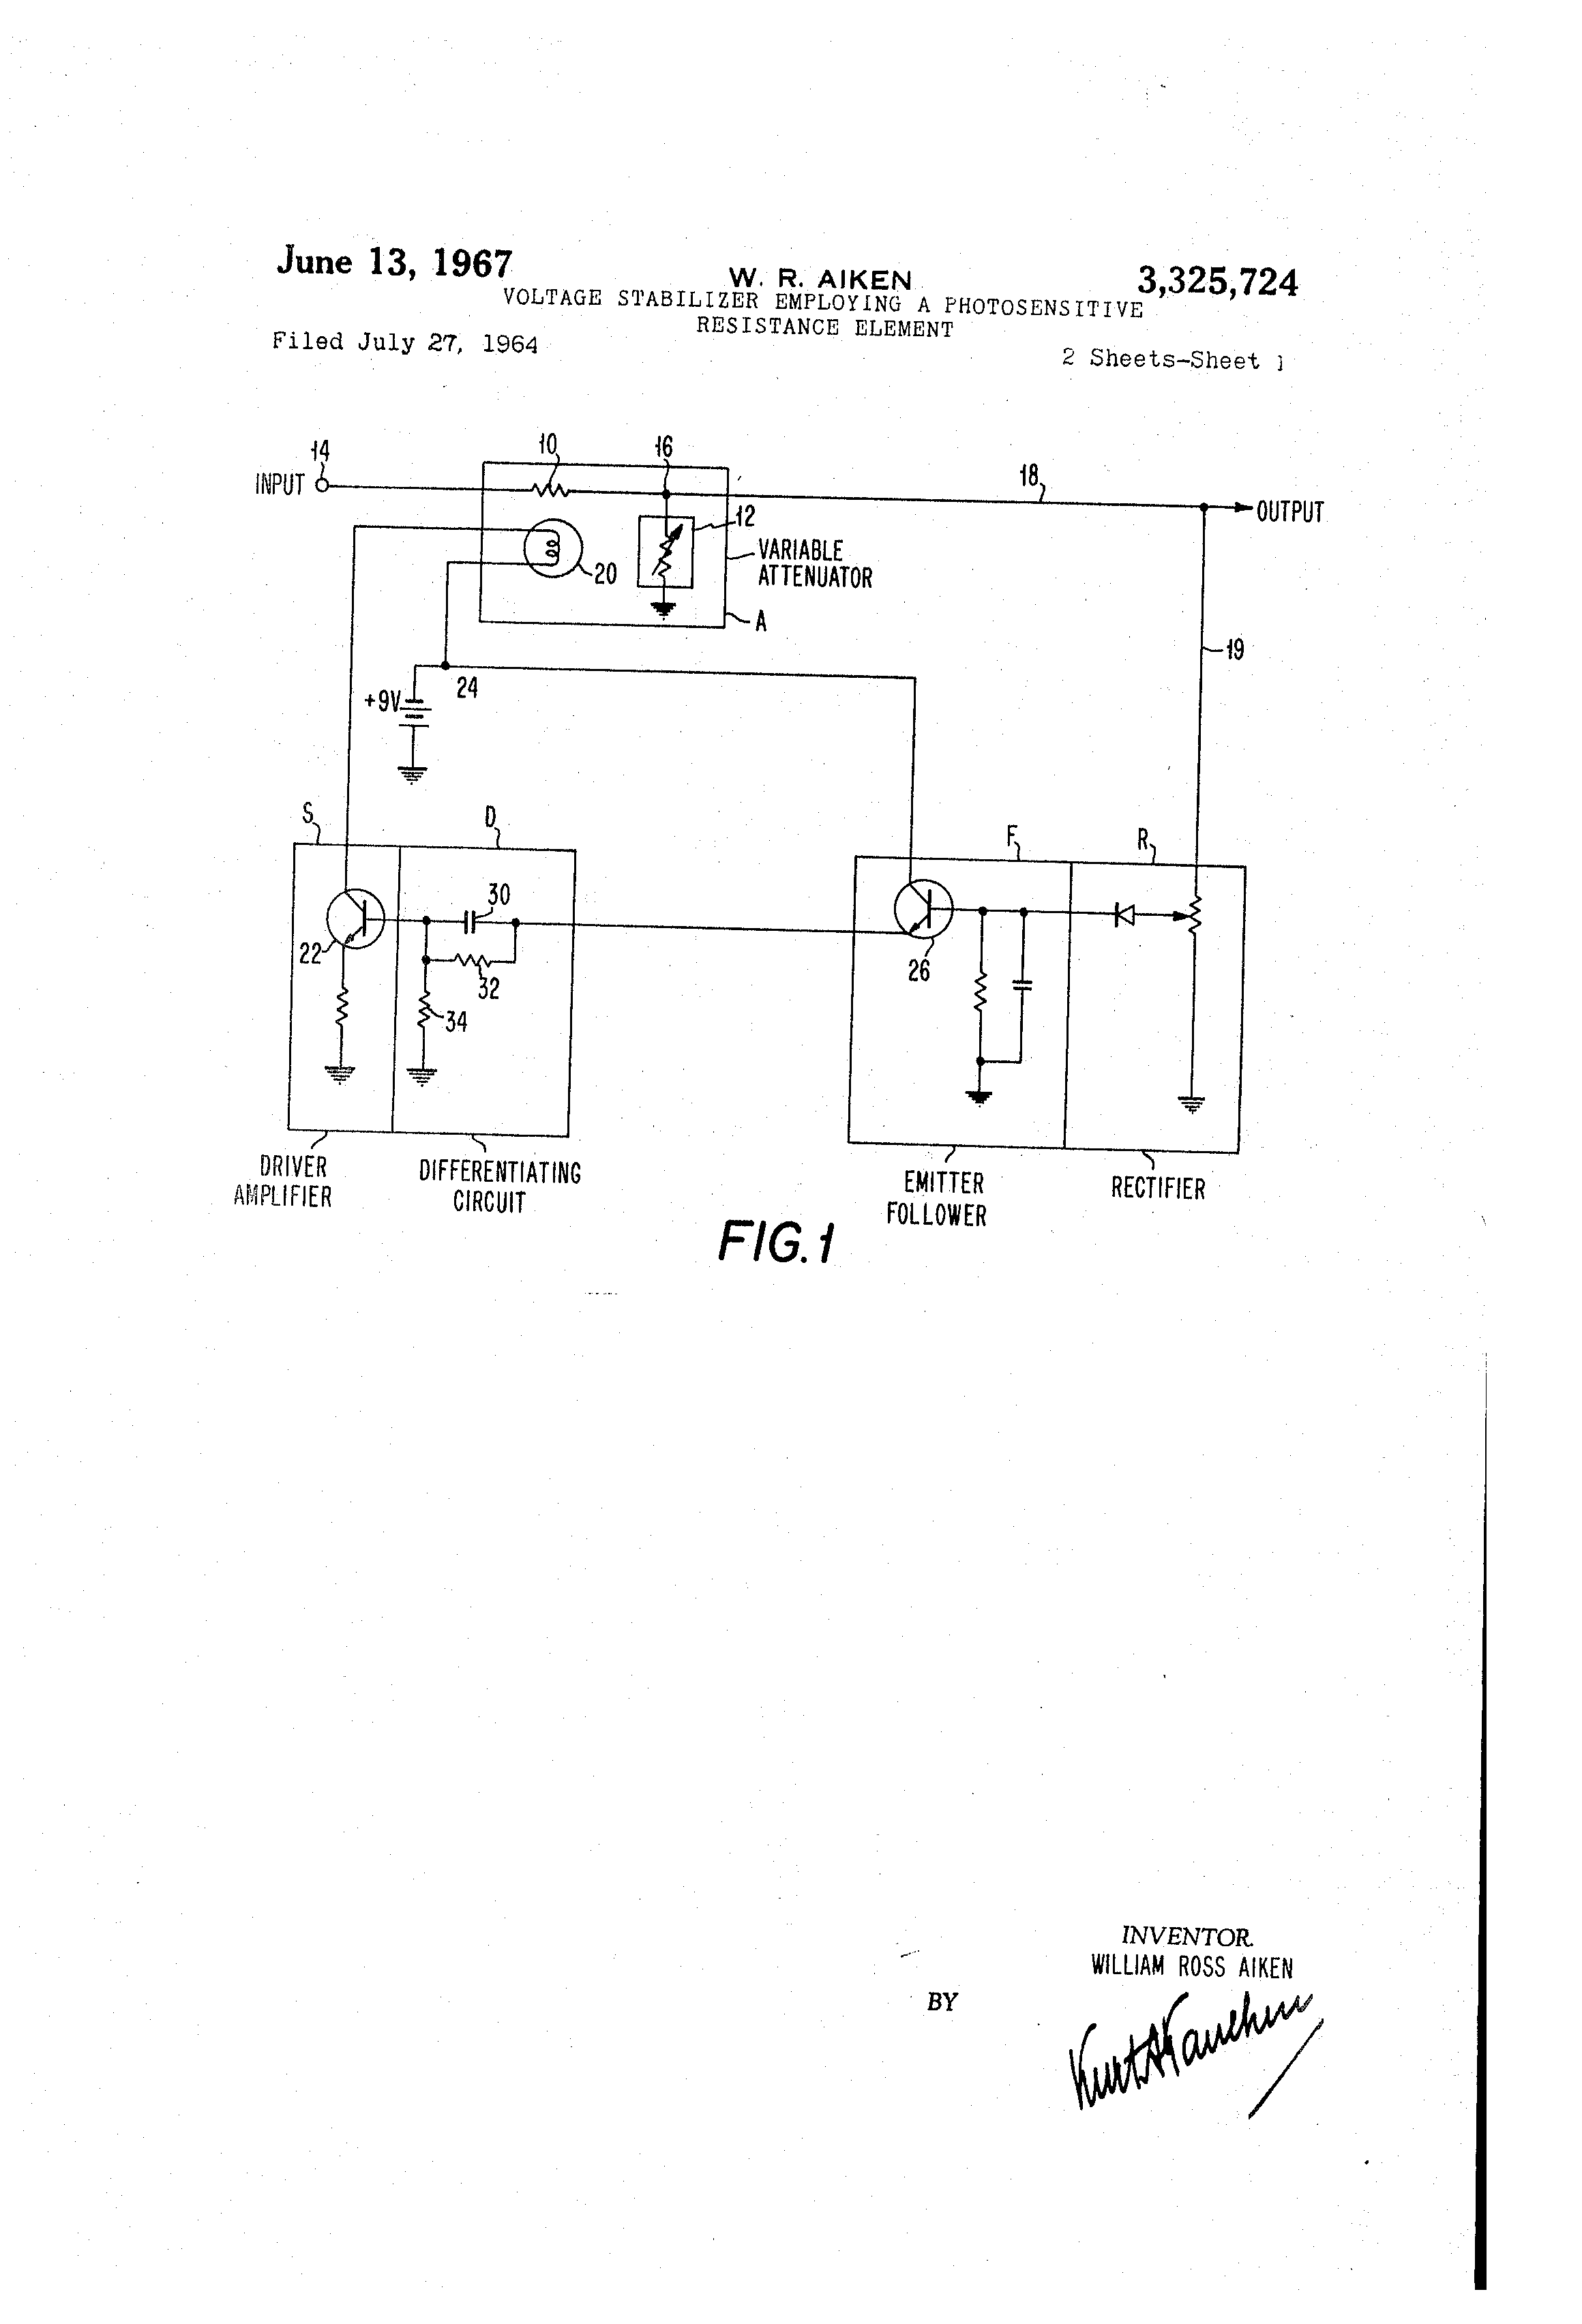 Patent Us3325724 Voltage Stabilizer Employing A Photosensitive By The Resistor Of This Circuit Is Diagram Drawing